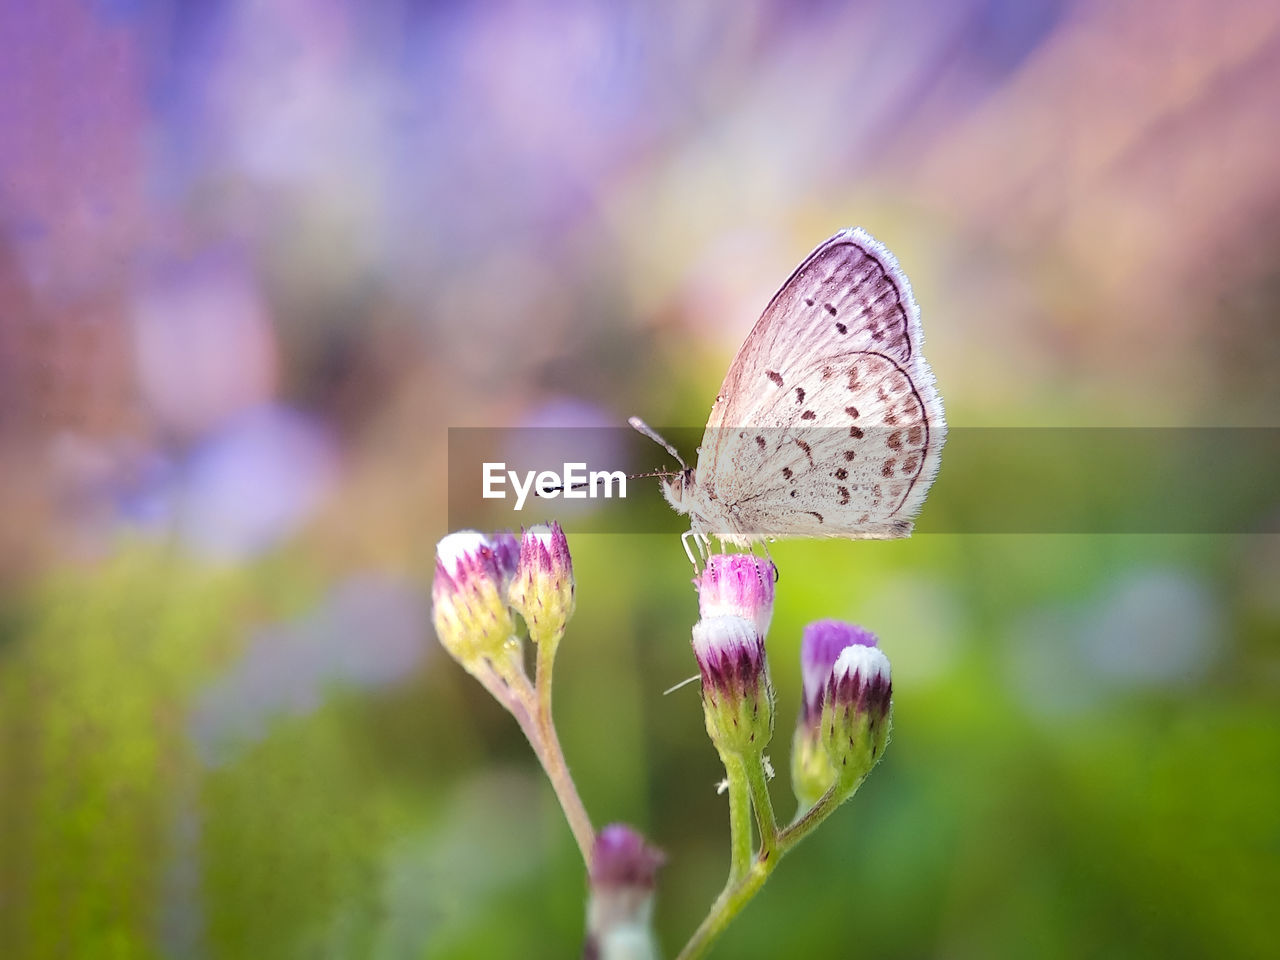 flower, flowering plant, beauty in nature, plant, animal wildlife, insect, fragility, vulnerability, invertebrate, animal, close-up, animals in the wild, animal themes, animal wing, freshness, butterfly - insect, growth, one animal, focus on foreground, flower head, pink color, pollination, no people, outdoors, butterfly, purple